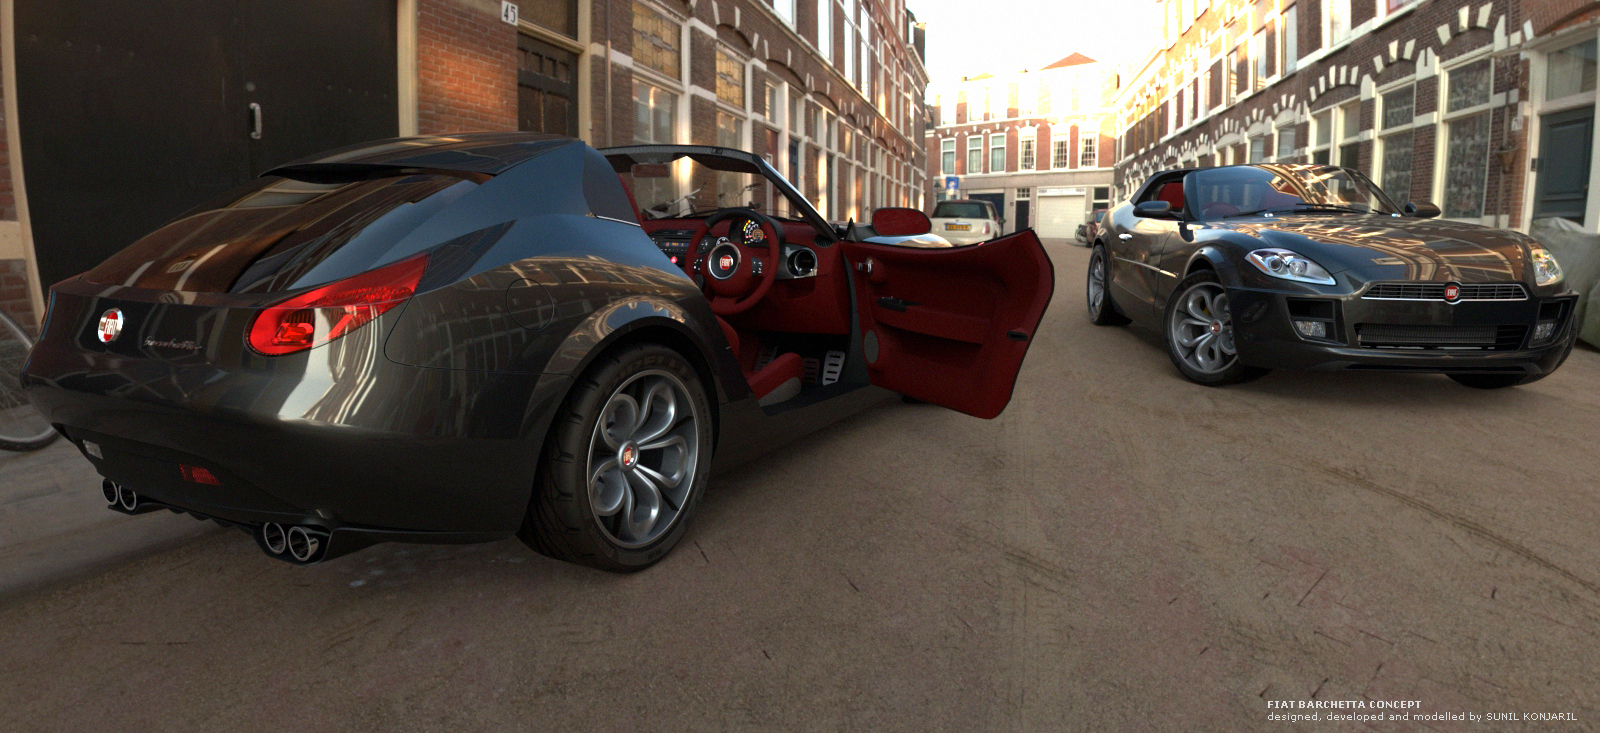 Fiat Barchetta modern generation 3d art